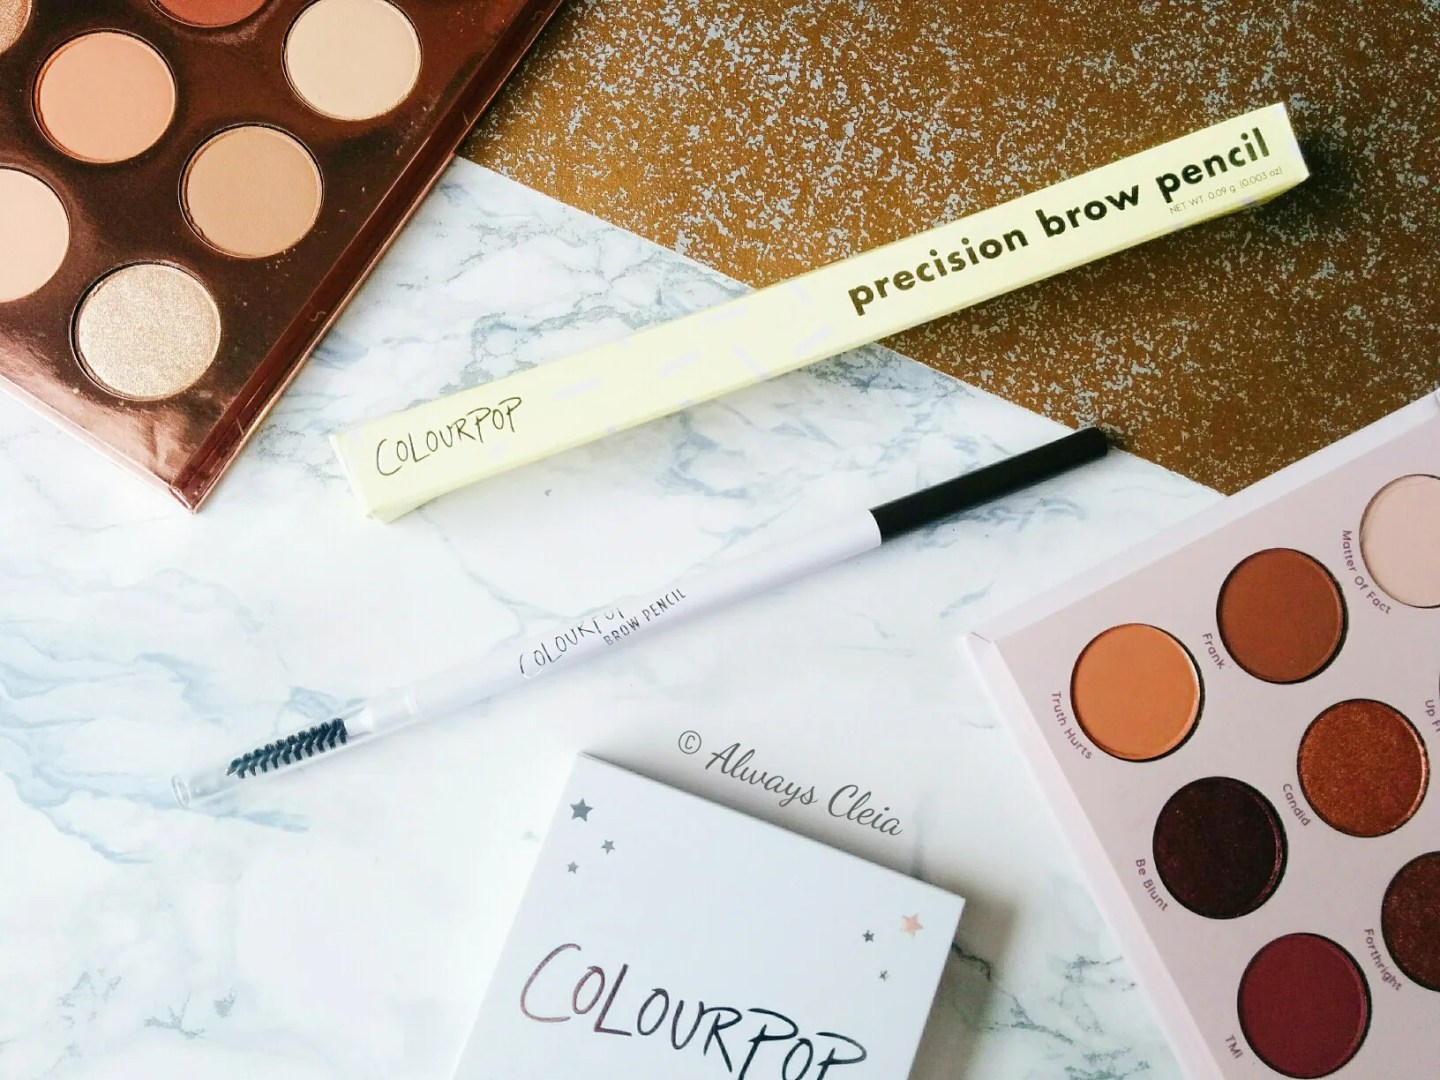 ColourPop Haul #3 - Precision Brow Pencil